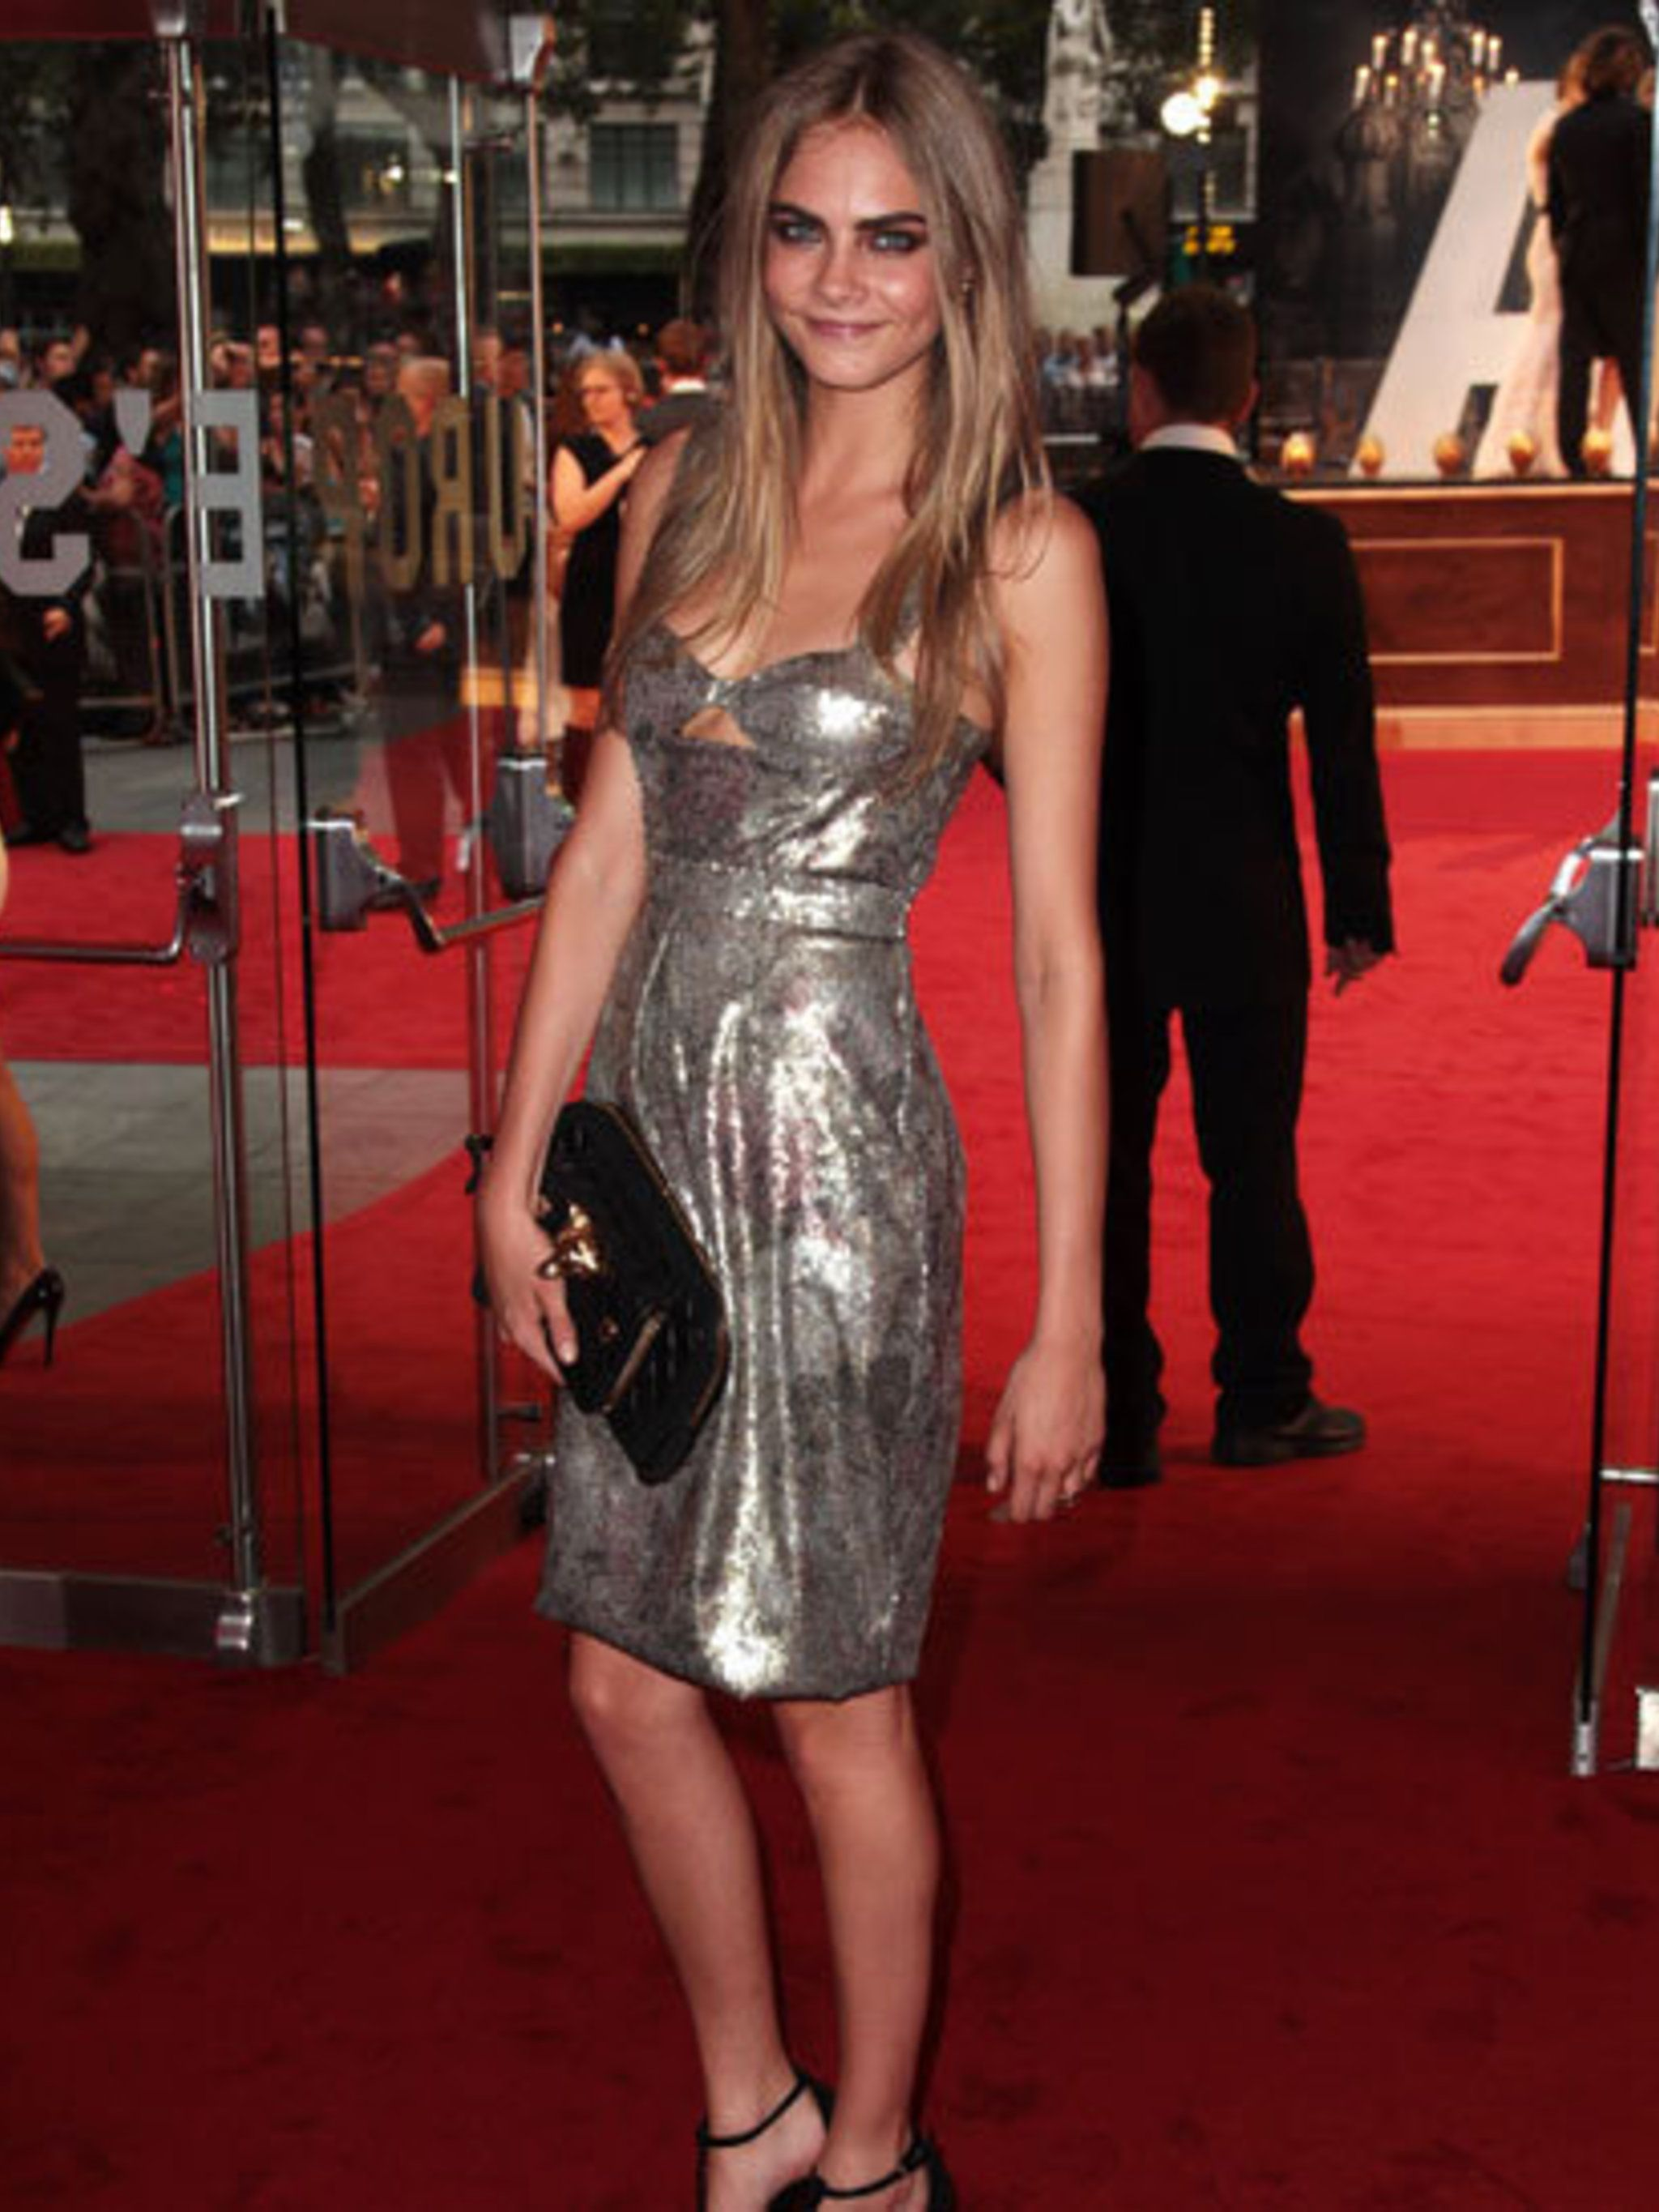 <p>Cara Delevigne attends the World Premiere of Anna Karenina in London Leicester Square wearing Burberry.</p>